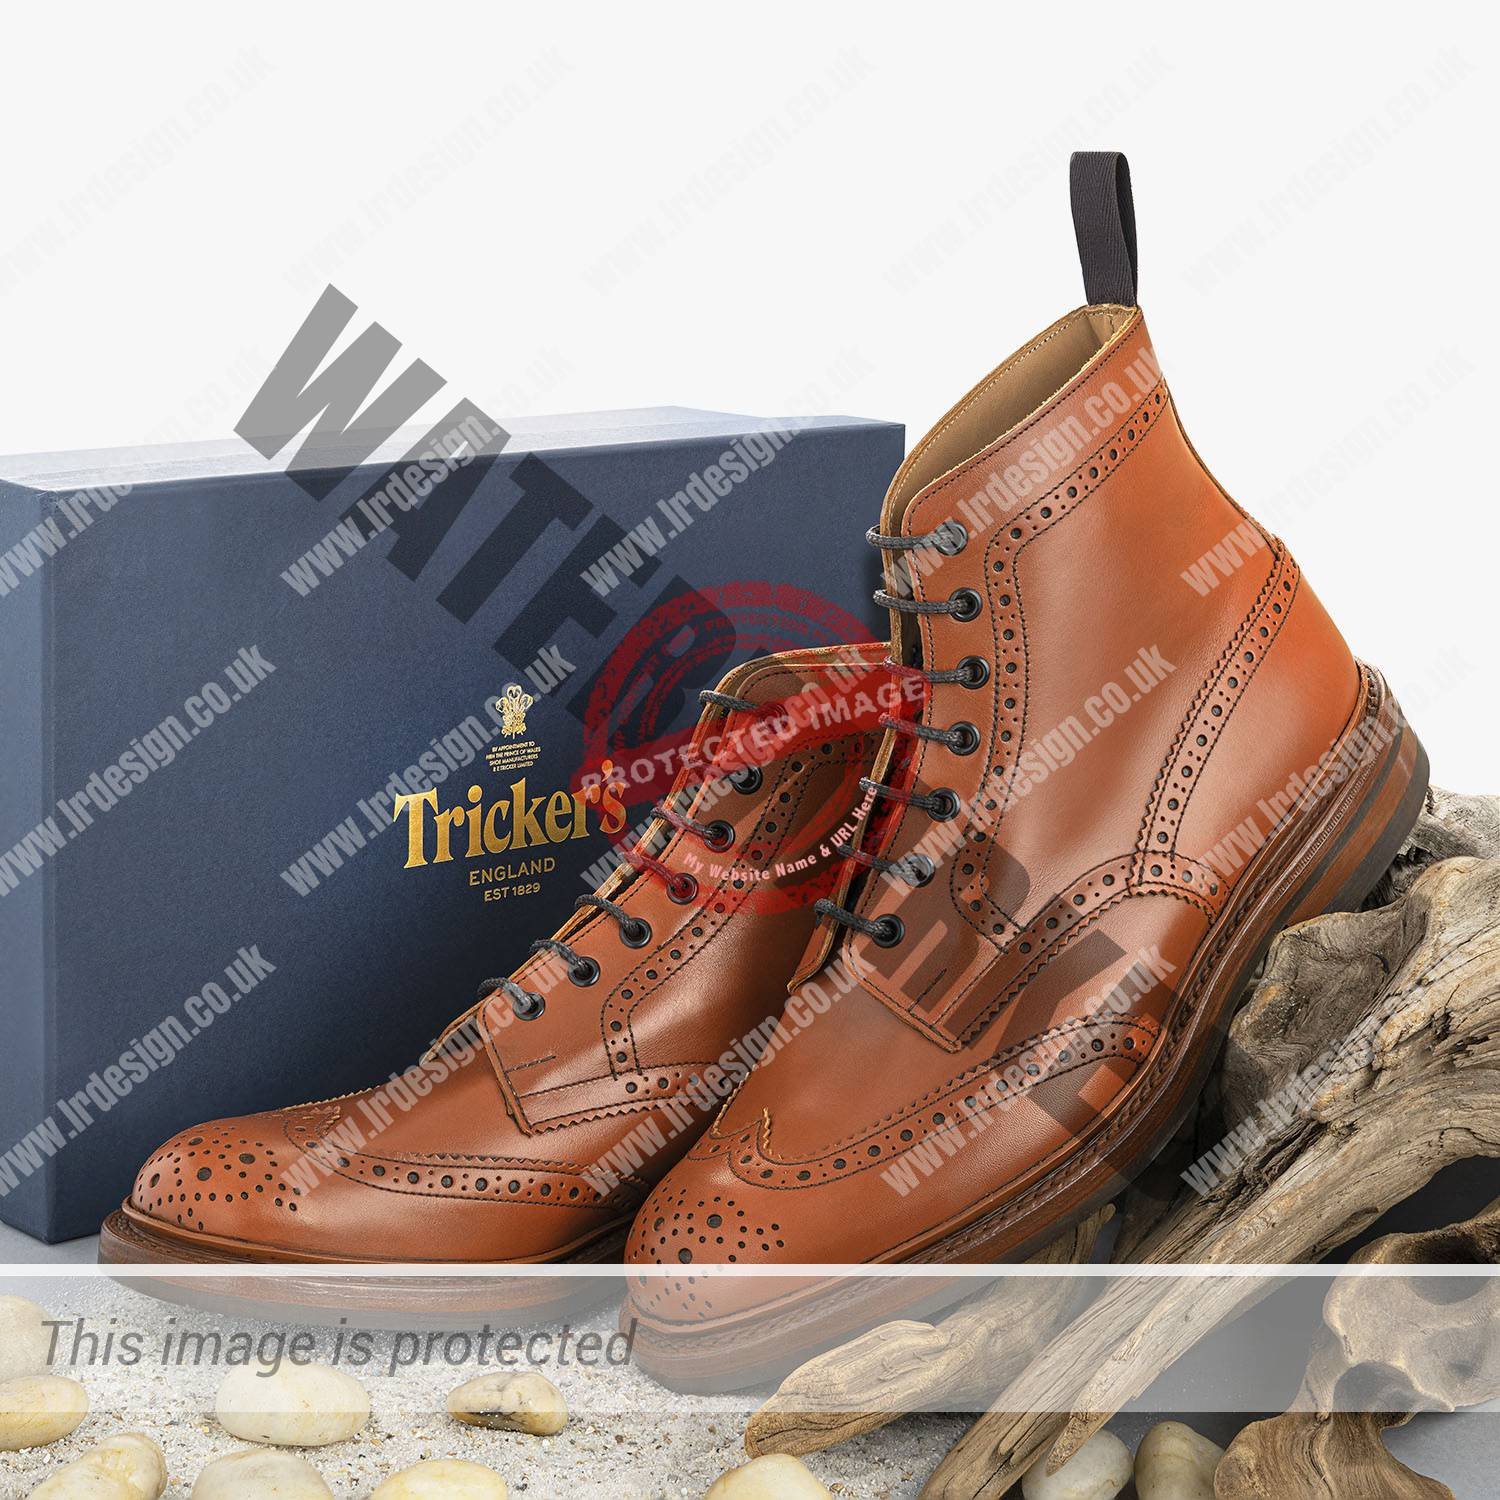 Tickler's handmade men's country boots on the beach.